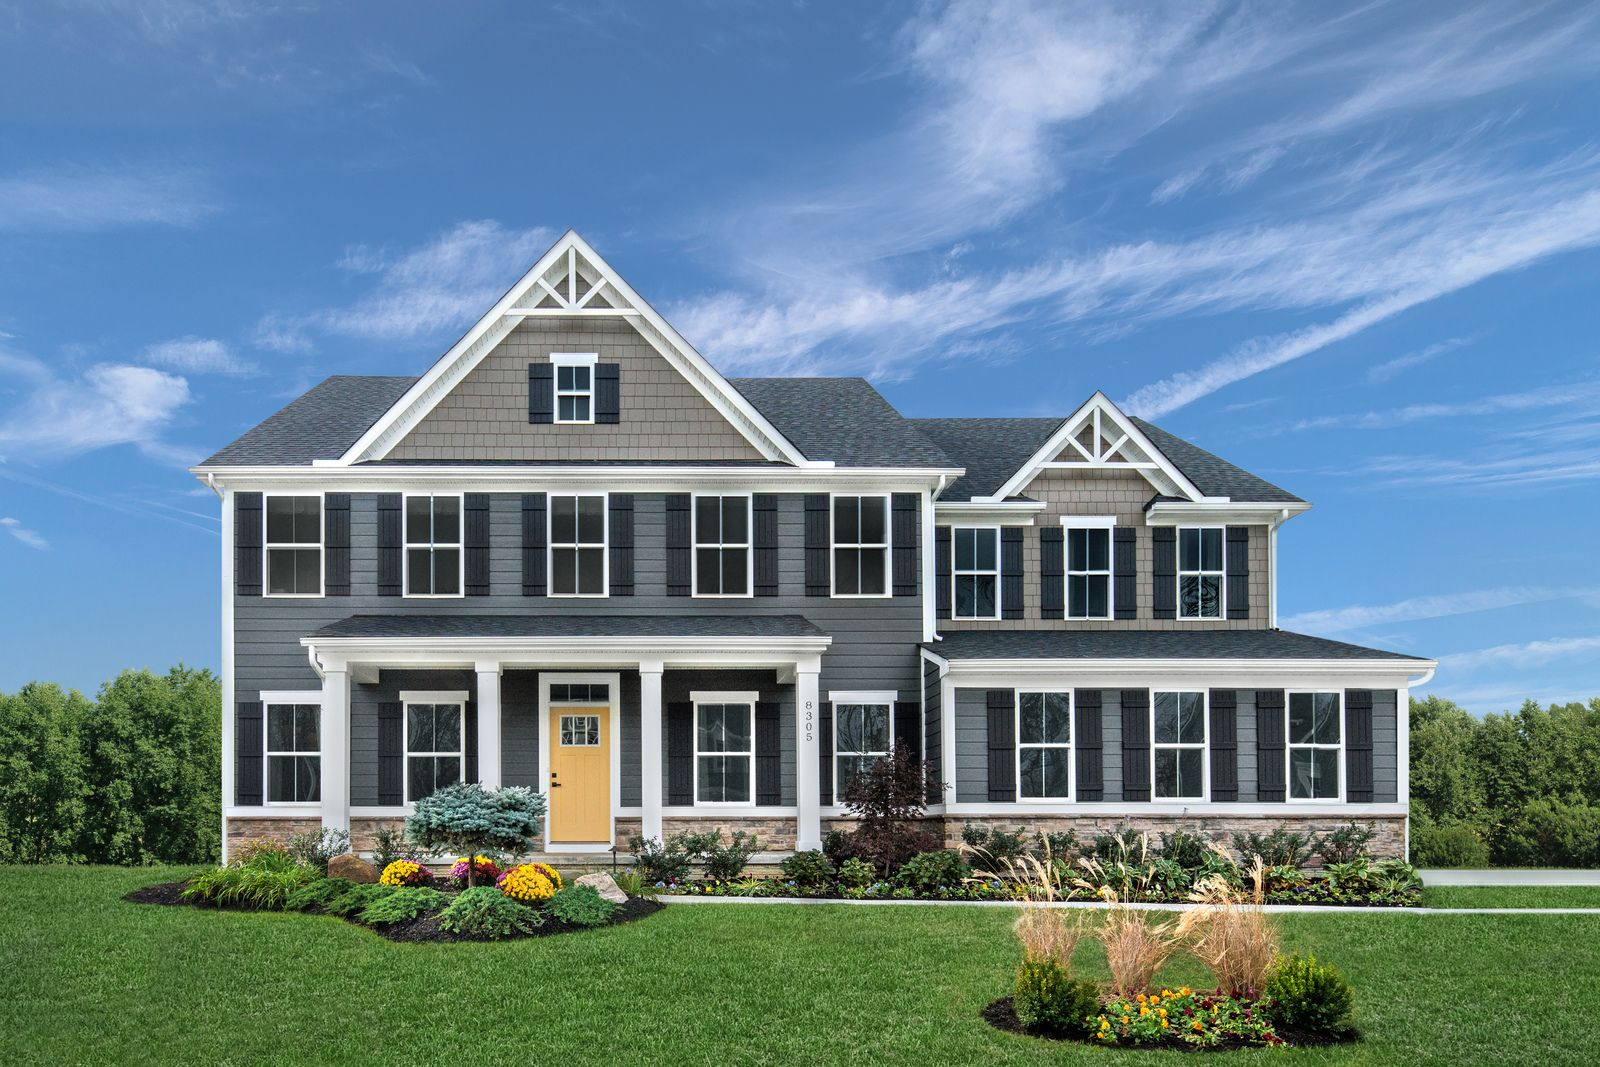 RYAN HOMES AT FAWN LAKE - COMING FALL 2020 TO THE FREDERICKSBURG AREA FROM THE UPPER $400S!:Live the good life on 1/2 acre wooded homesites in a premier gated community! Enjoy this lakeside paradise with luxury amenities at your fingertips.Click here to Join the VIP list!